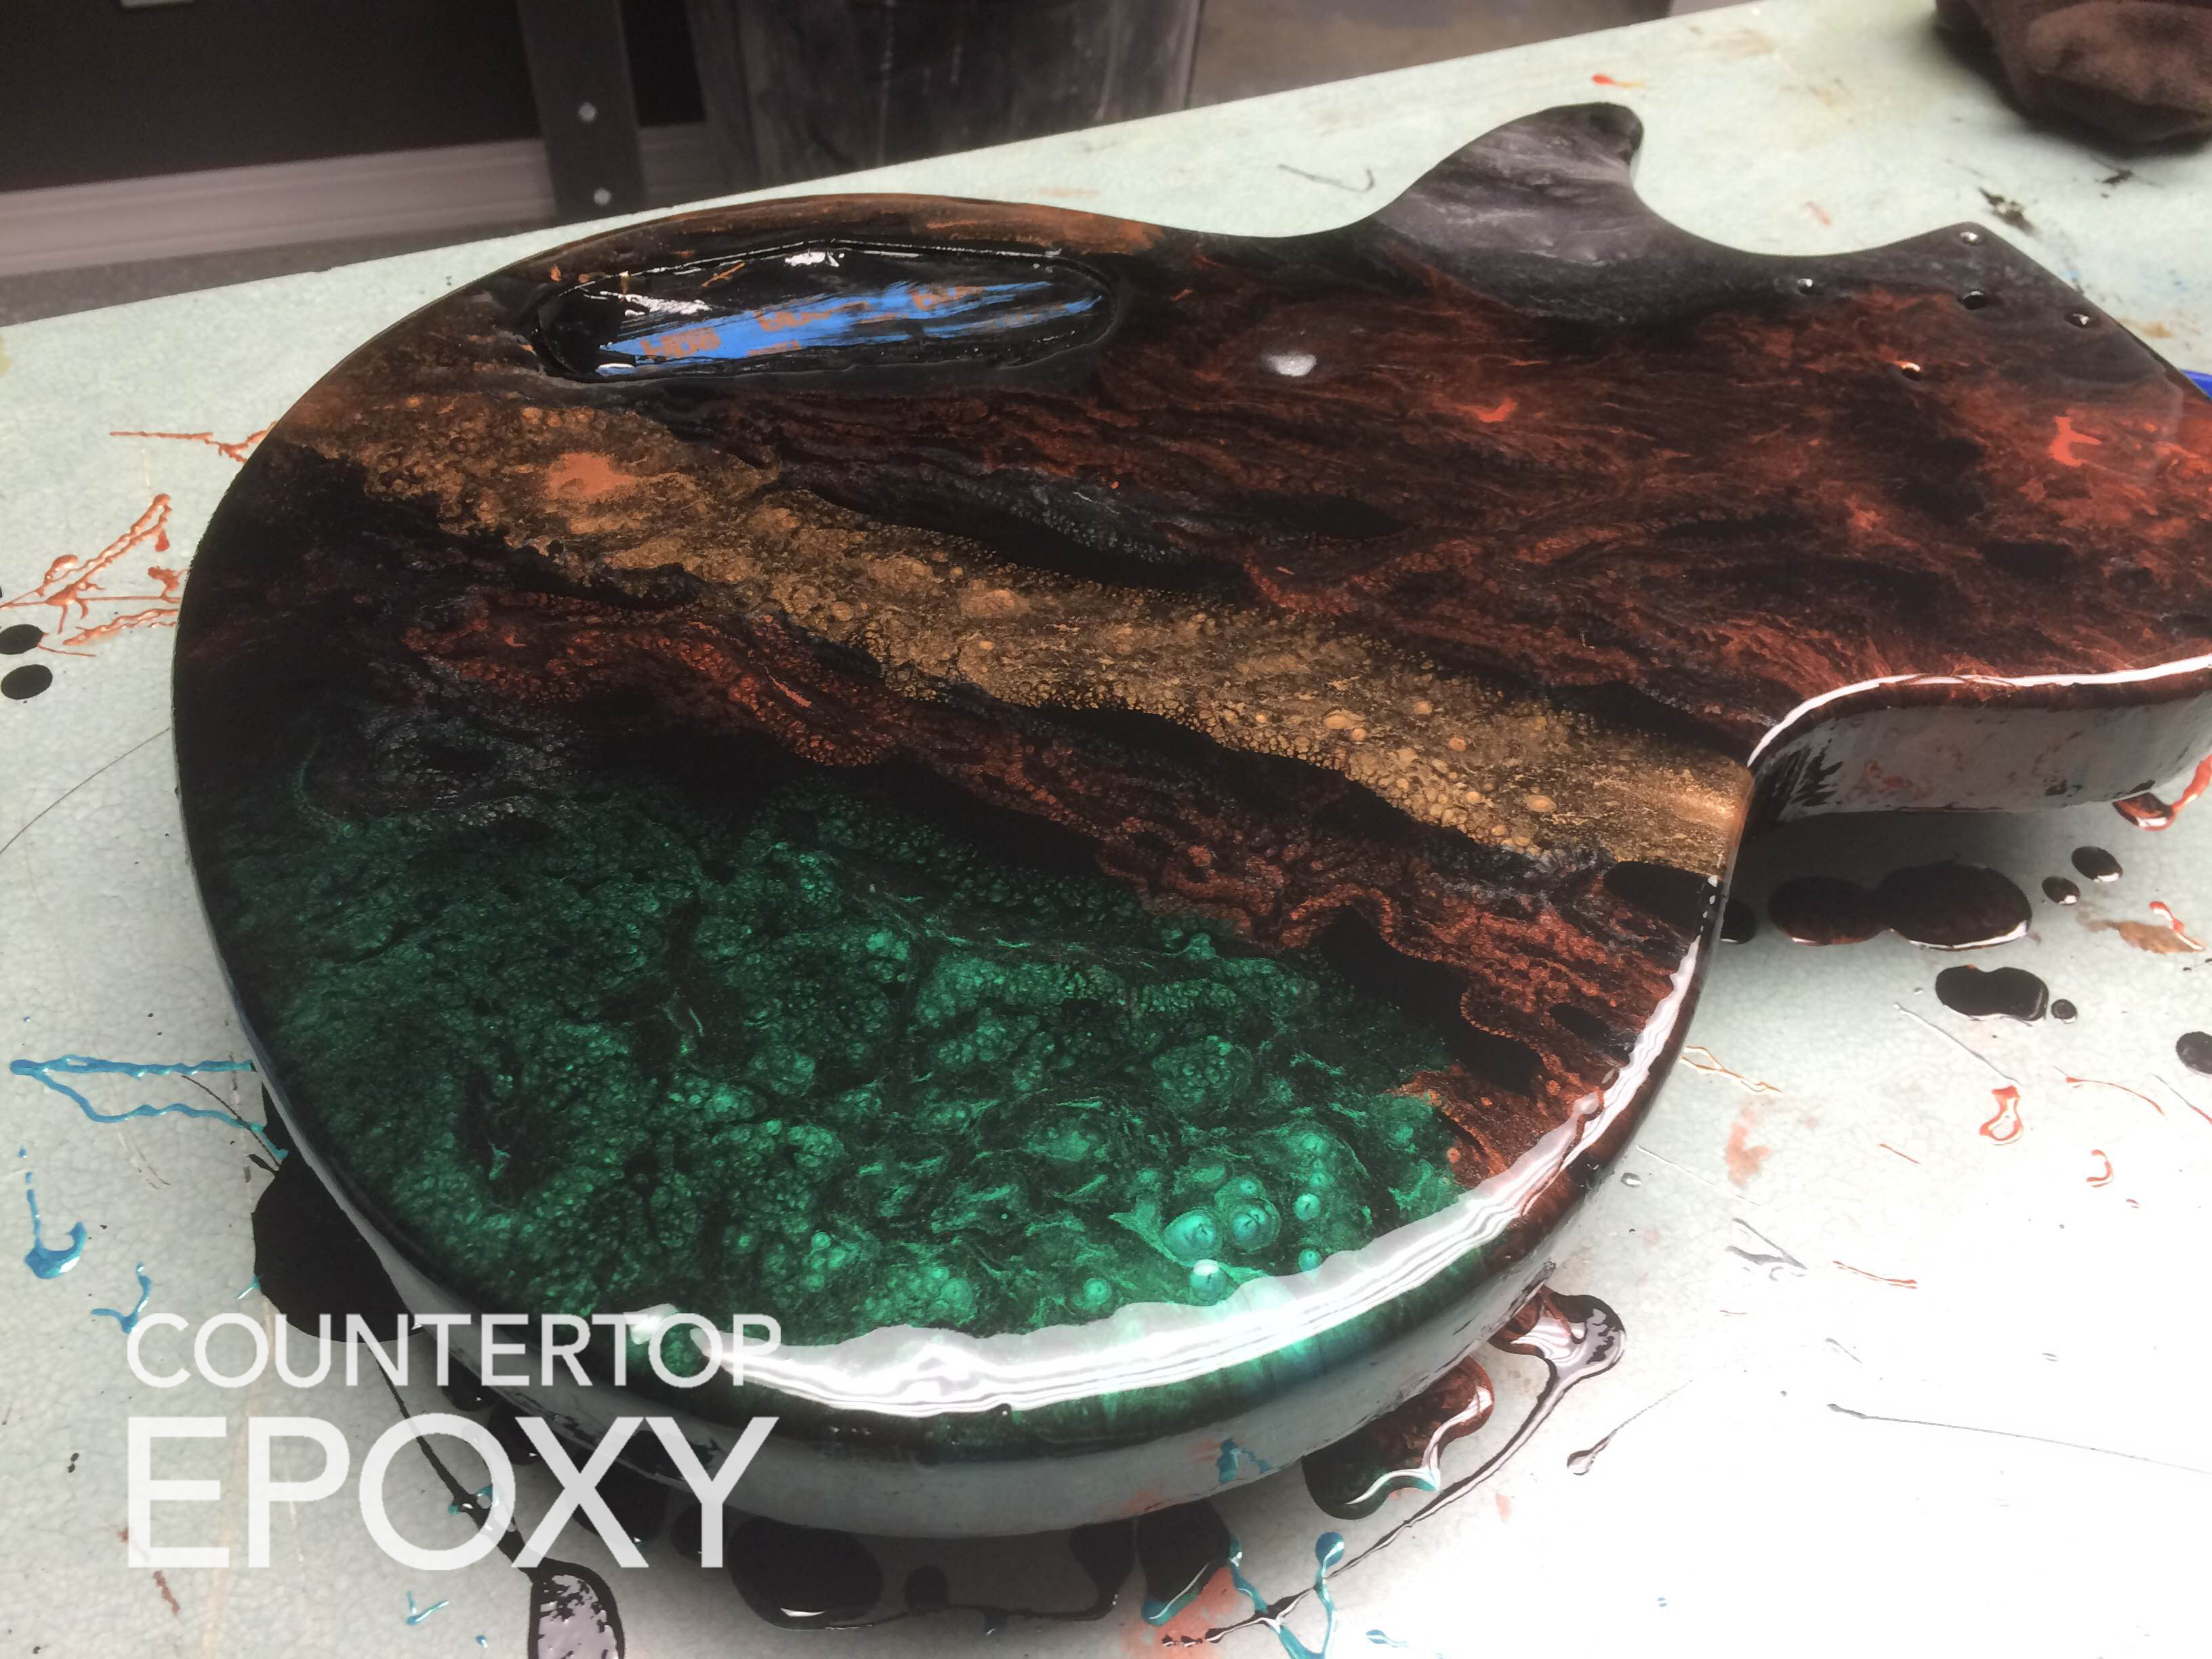 Endless Possibilities with Countertop Epoxy - Counter Top Epoxy